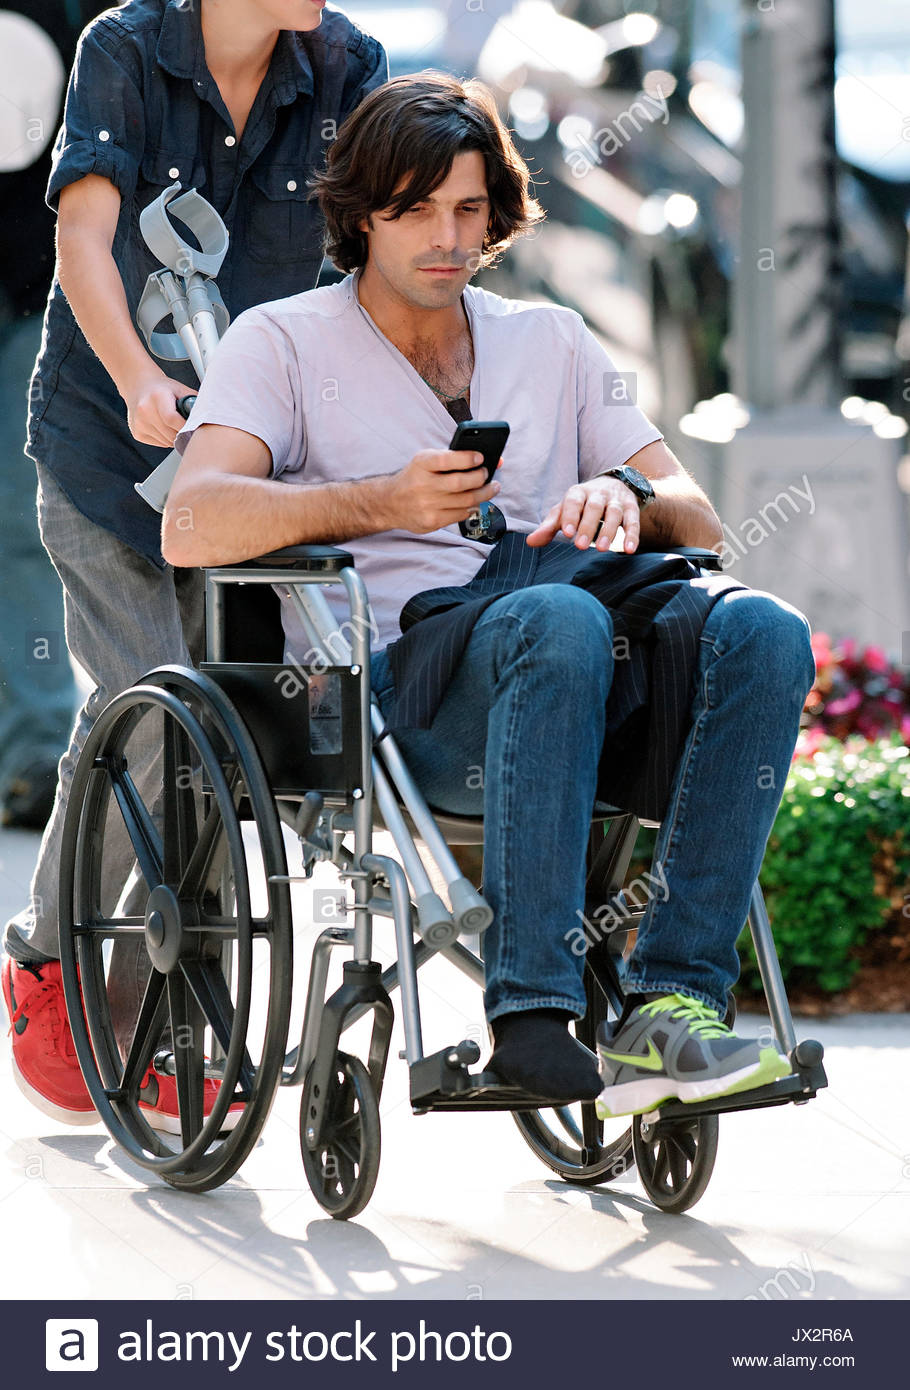 Is a Wheelchair Really the Worst Thing' for People With MS Is a Wheelchair Really the Worst Thing' for People With MS new pictures